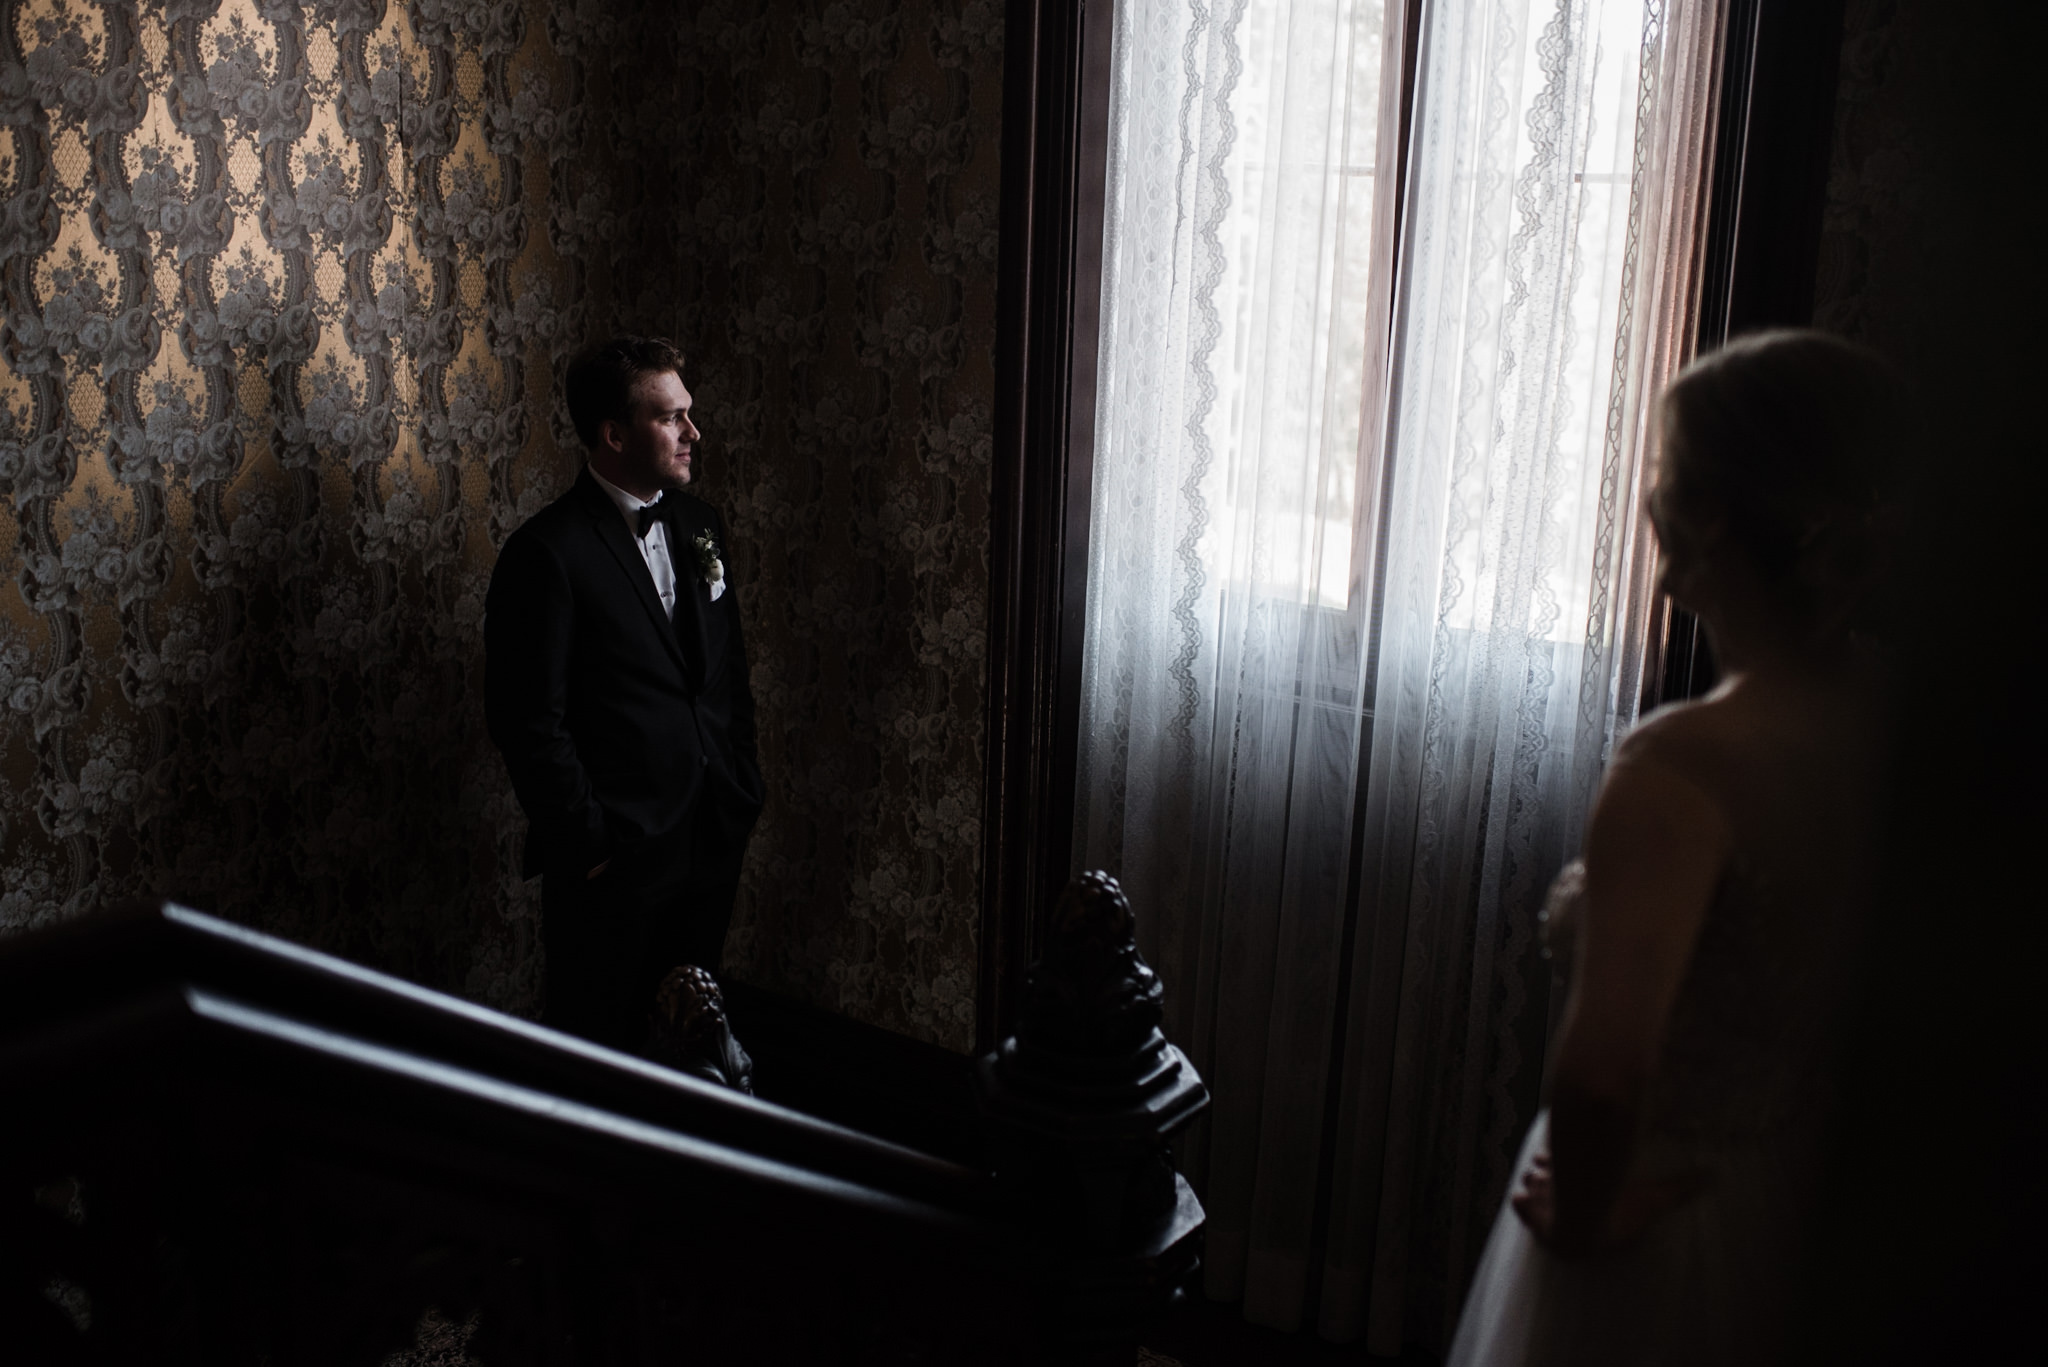 270-elegant-bride-portraits-indoors-wallpaper-toronto-photographer-penryn-park.jpg